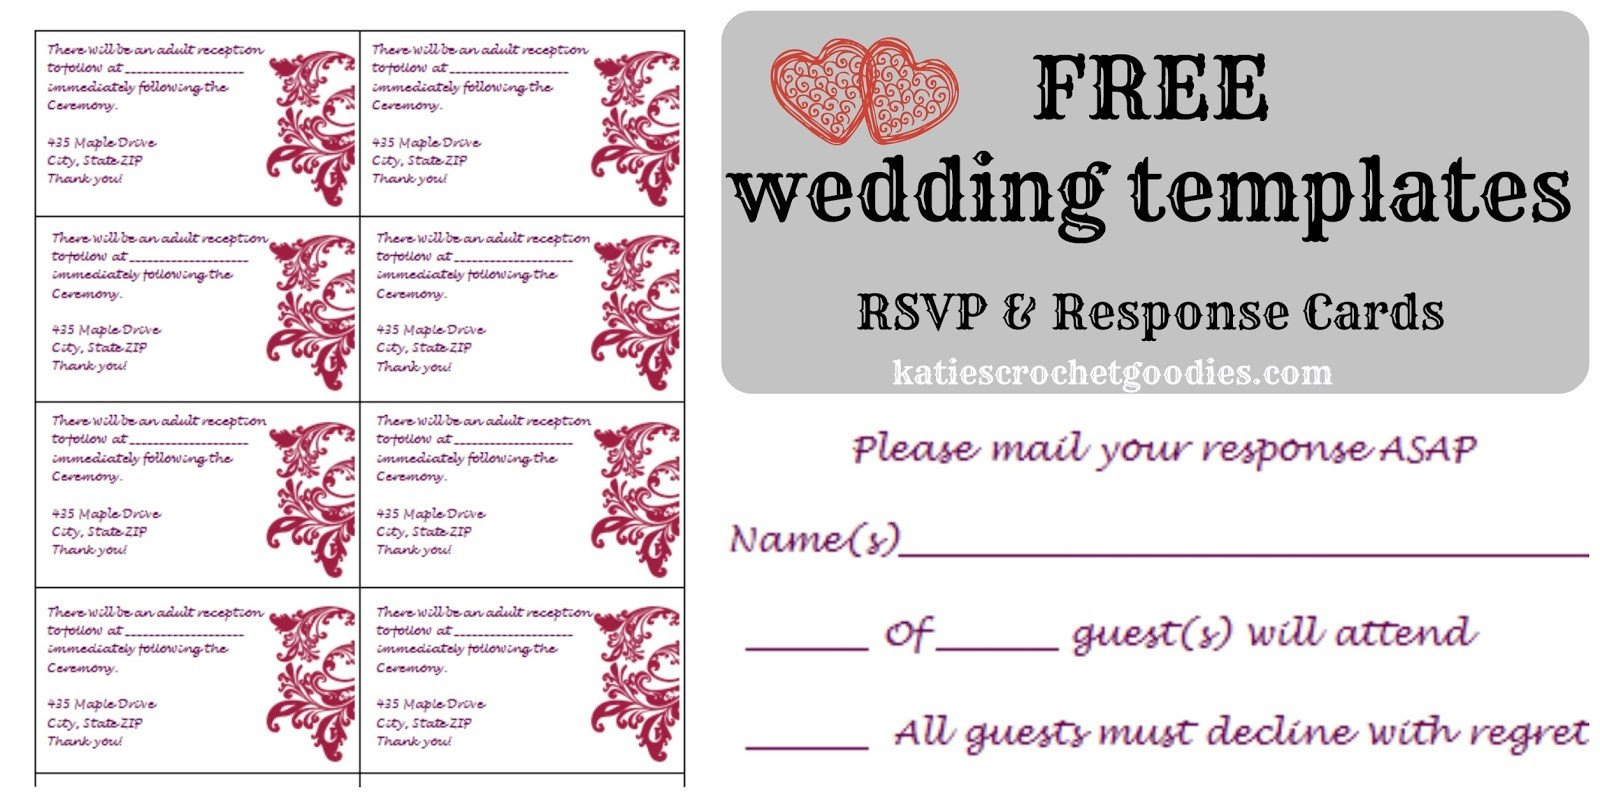 Wedding Rsvp Cards Template Free Wedding Templates Rsvp & Reception Cards Katie S